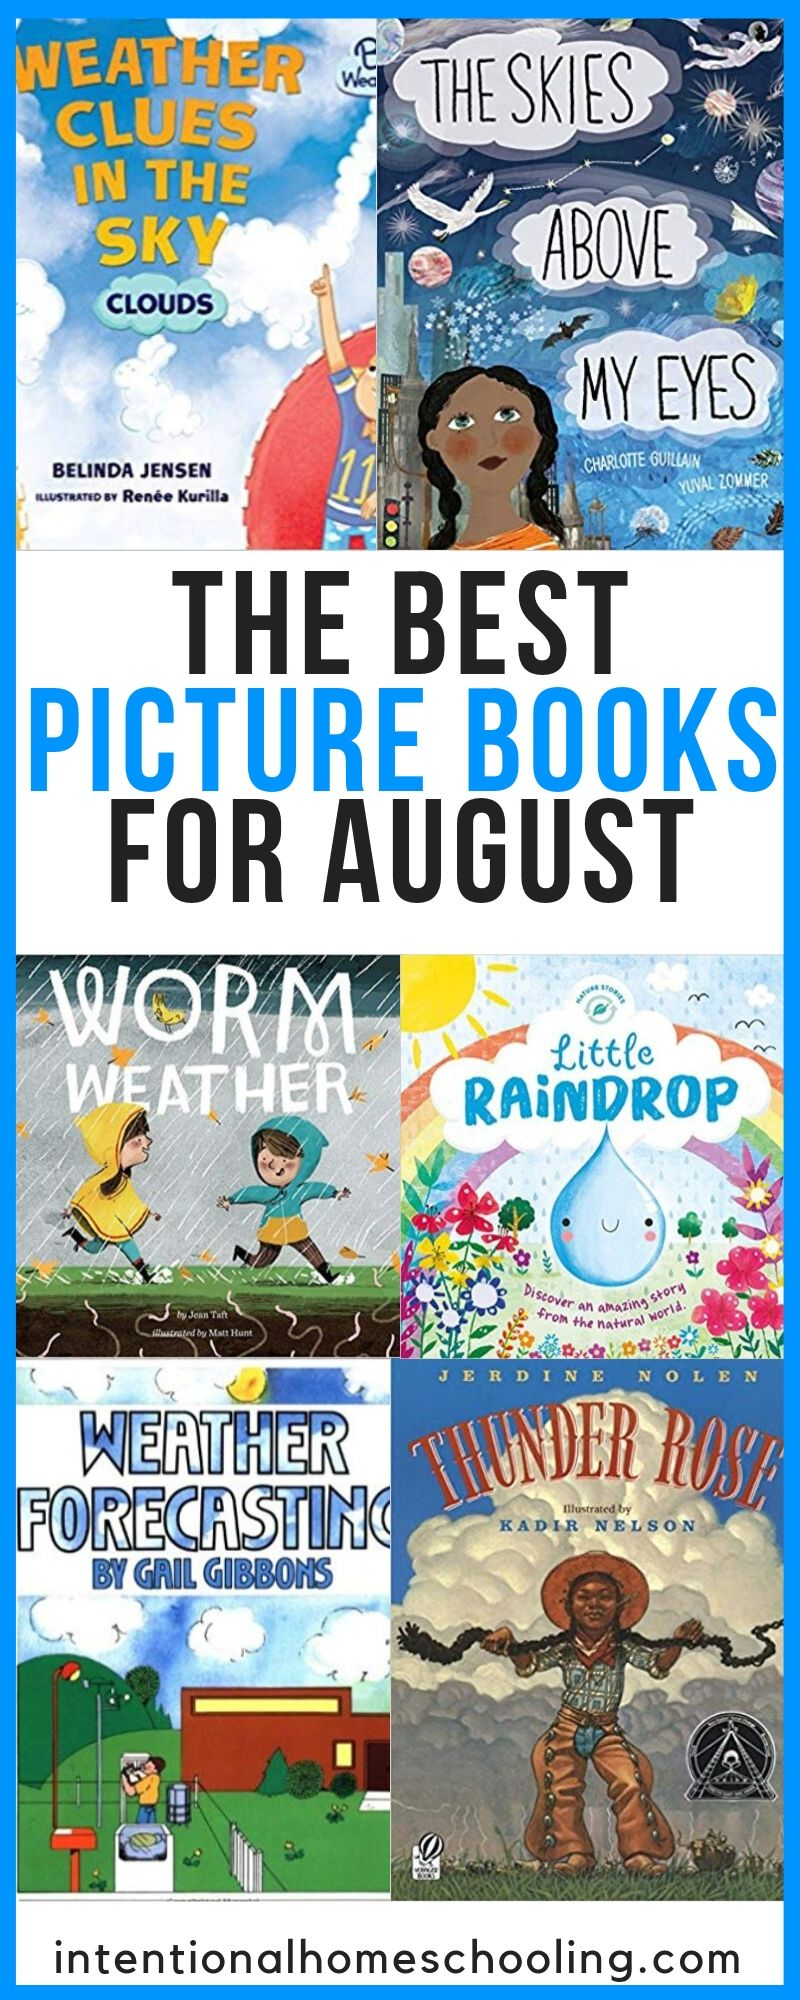 The Best Picture Books to Read in August - All About Weather - Fiction and Non-Fiction Picture Books Great for Kids in Elementary